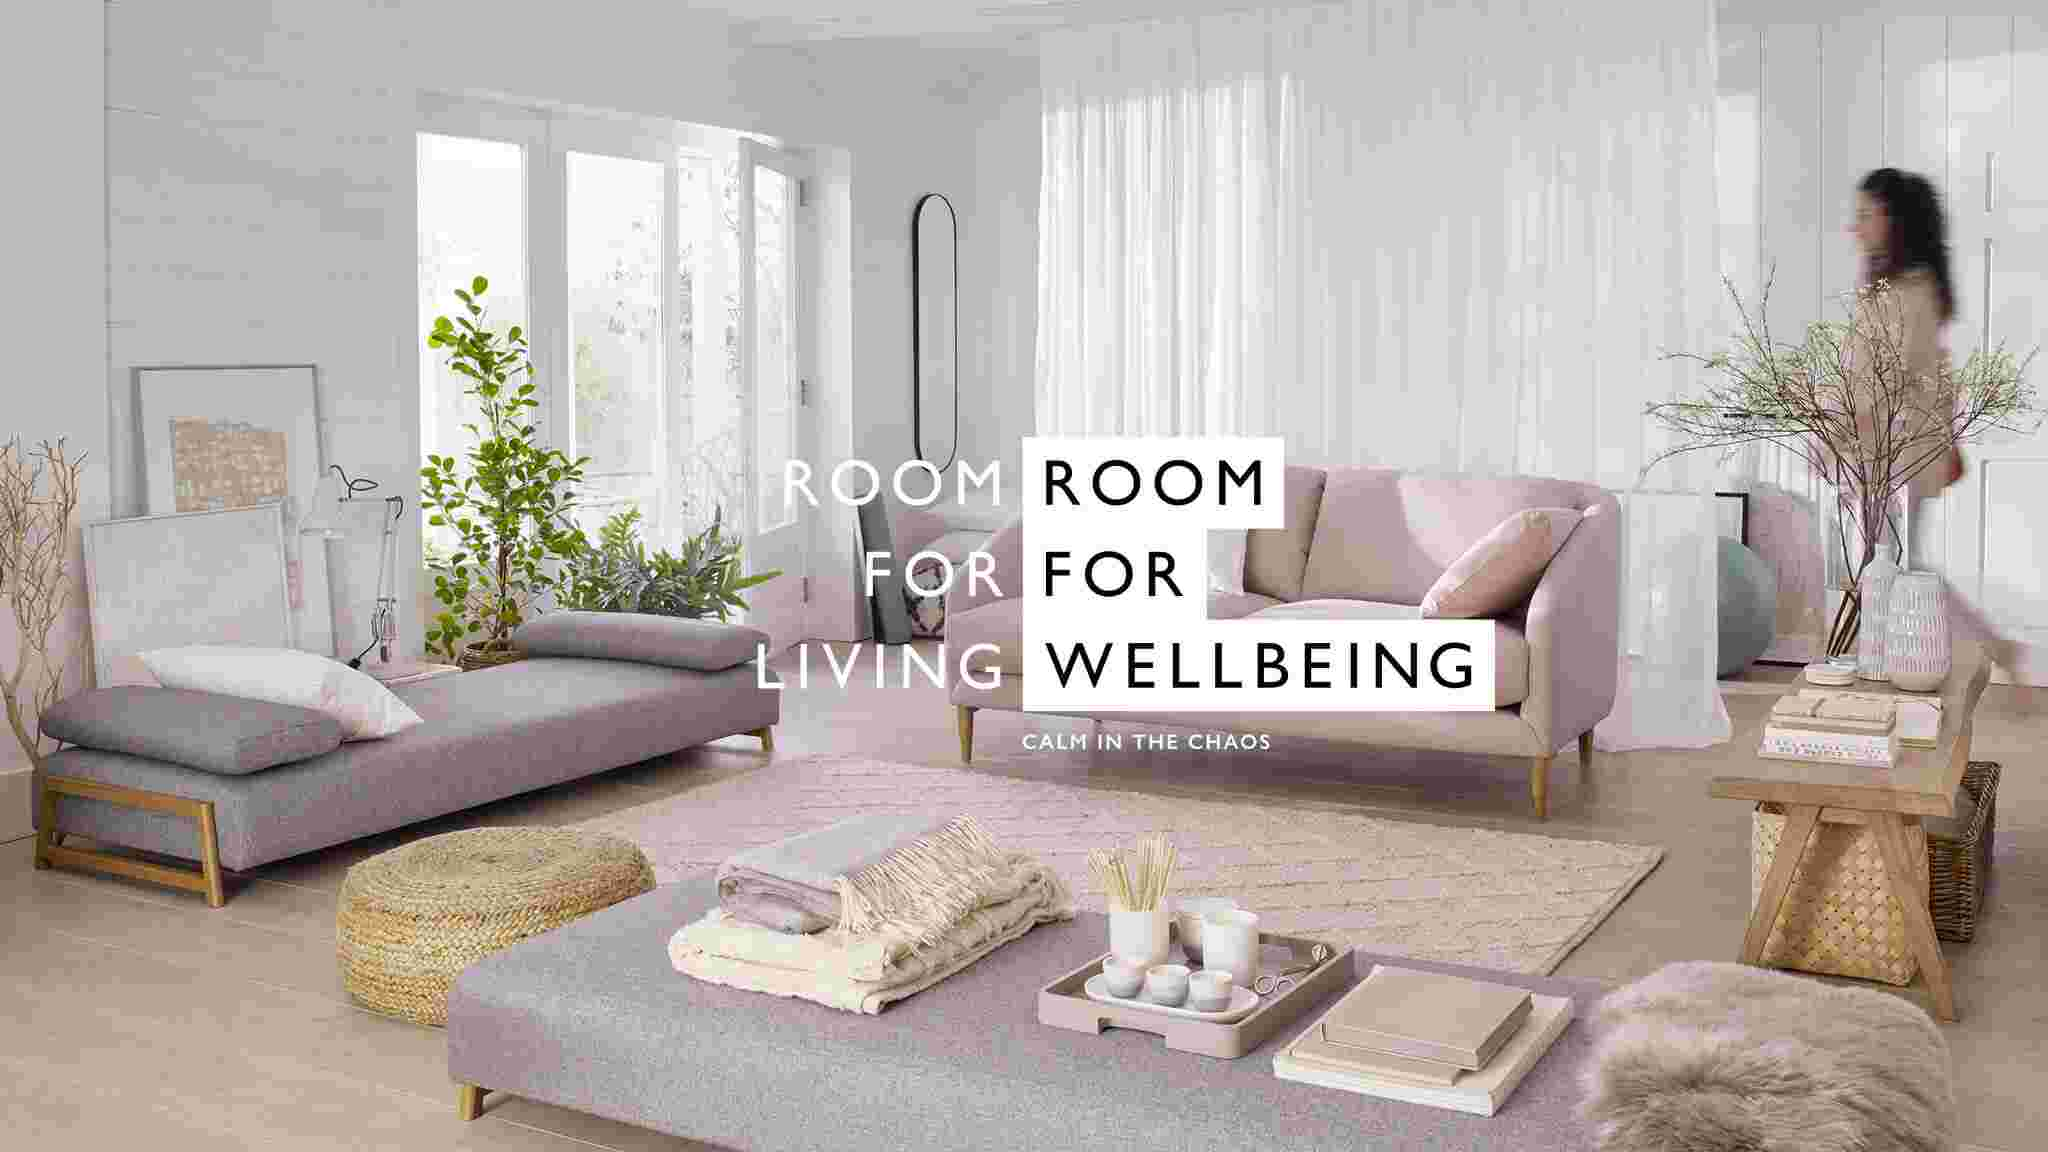 Room for Wellbeing